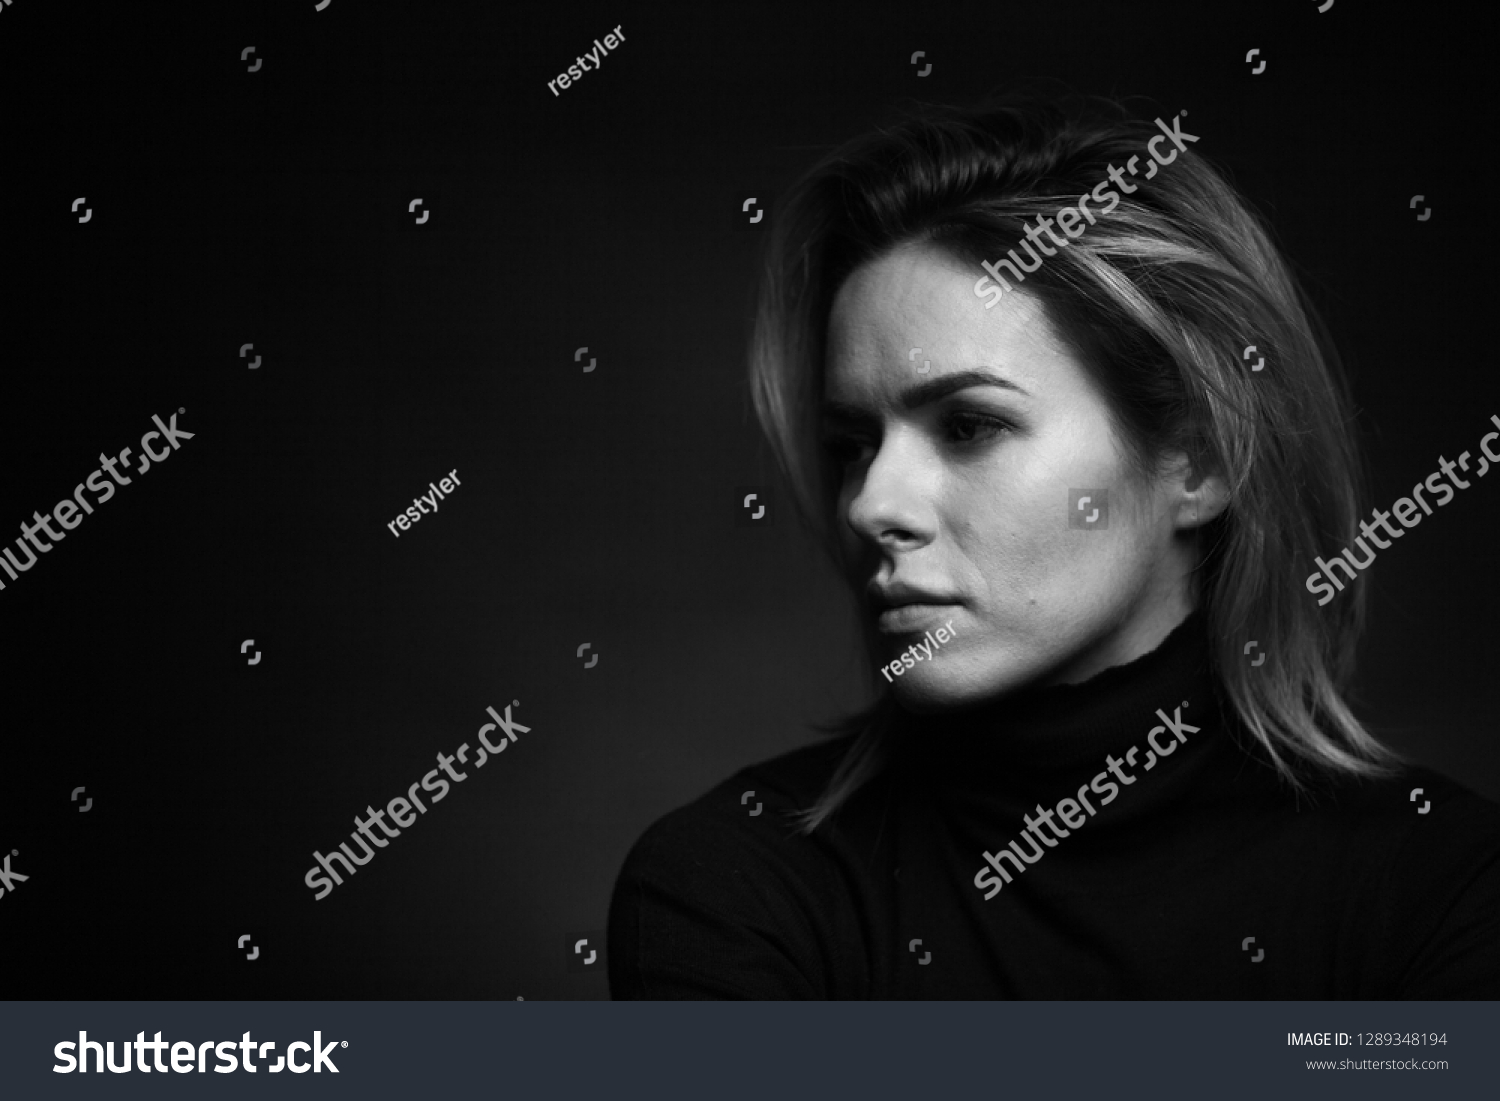 Dramatic black and white portrait of a stock photo 1289348194